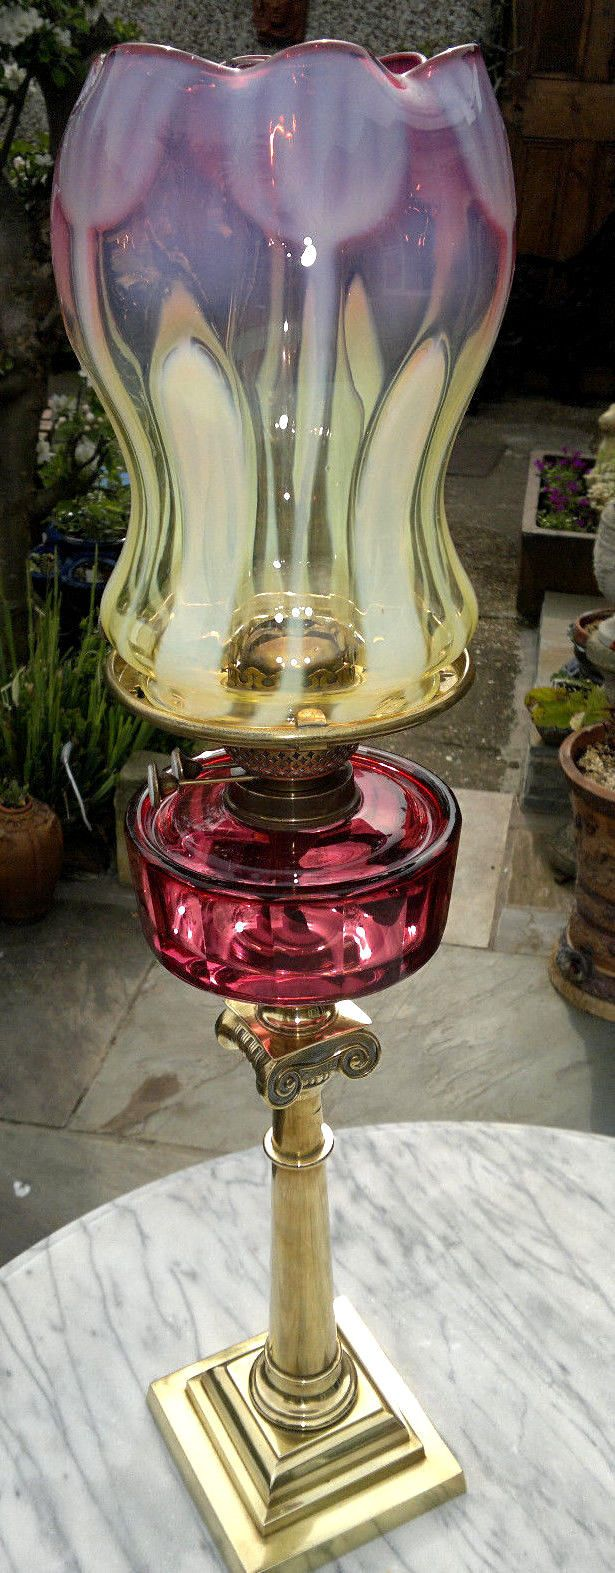 Rare Antique Victorian Art Nouveau Vaseline & Cranberry Glass Oil Lamp Art. Has a stunning vaseline uranium and cranberry glass shade with a faceted cut cranberry glass font standing on a brass square footed tapered ionic column base. It is in working order with the glass shade and font in excellent.